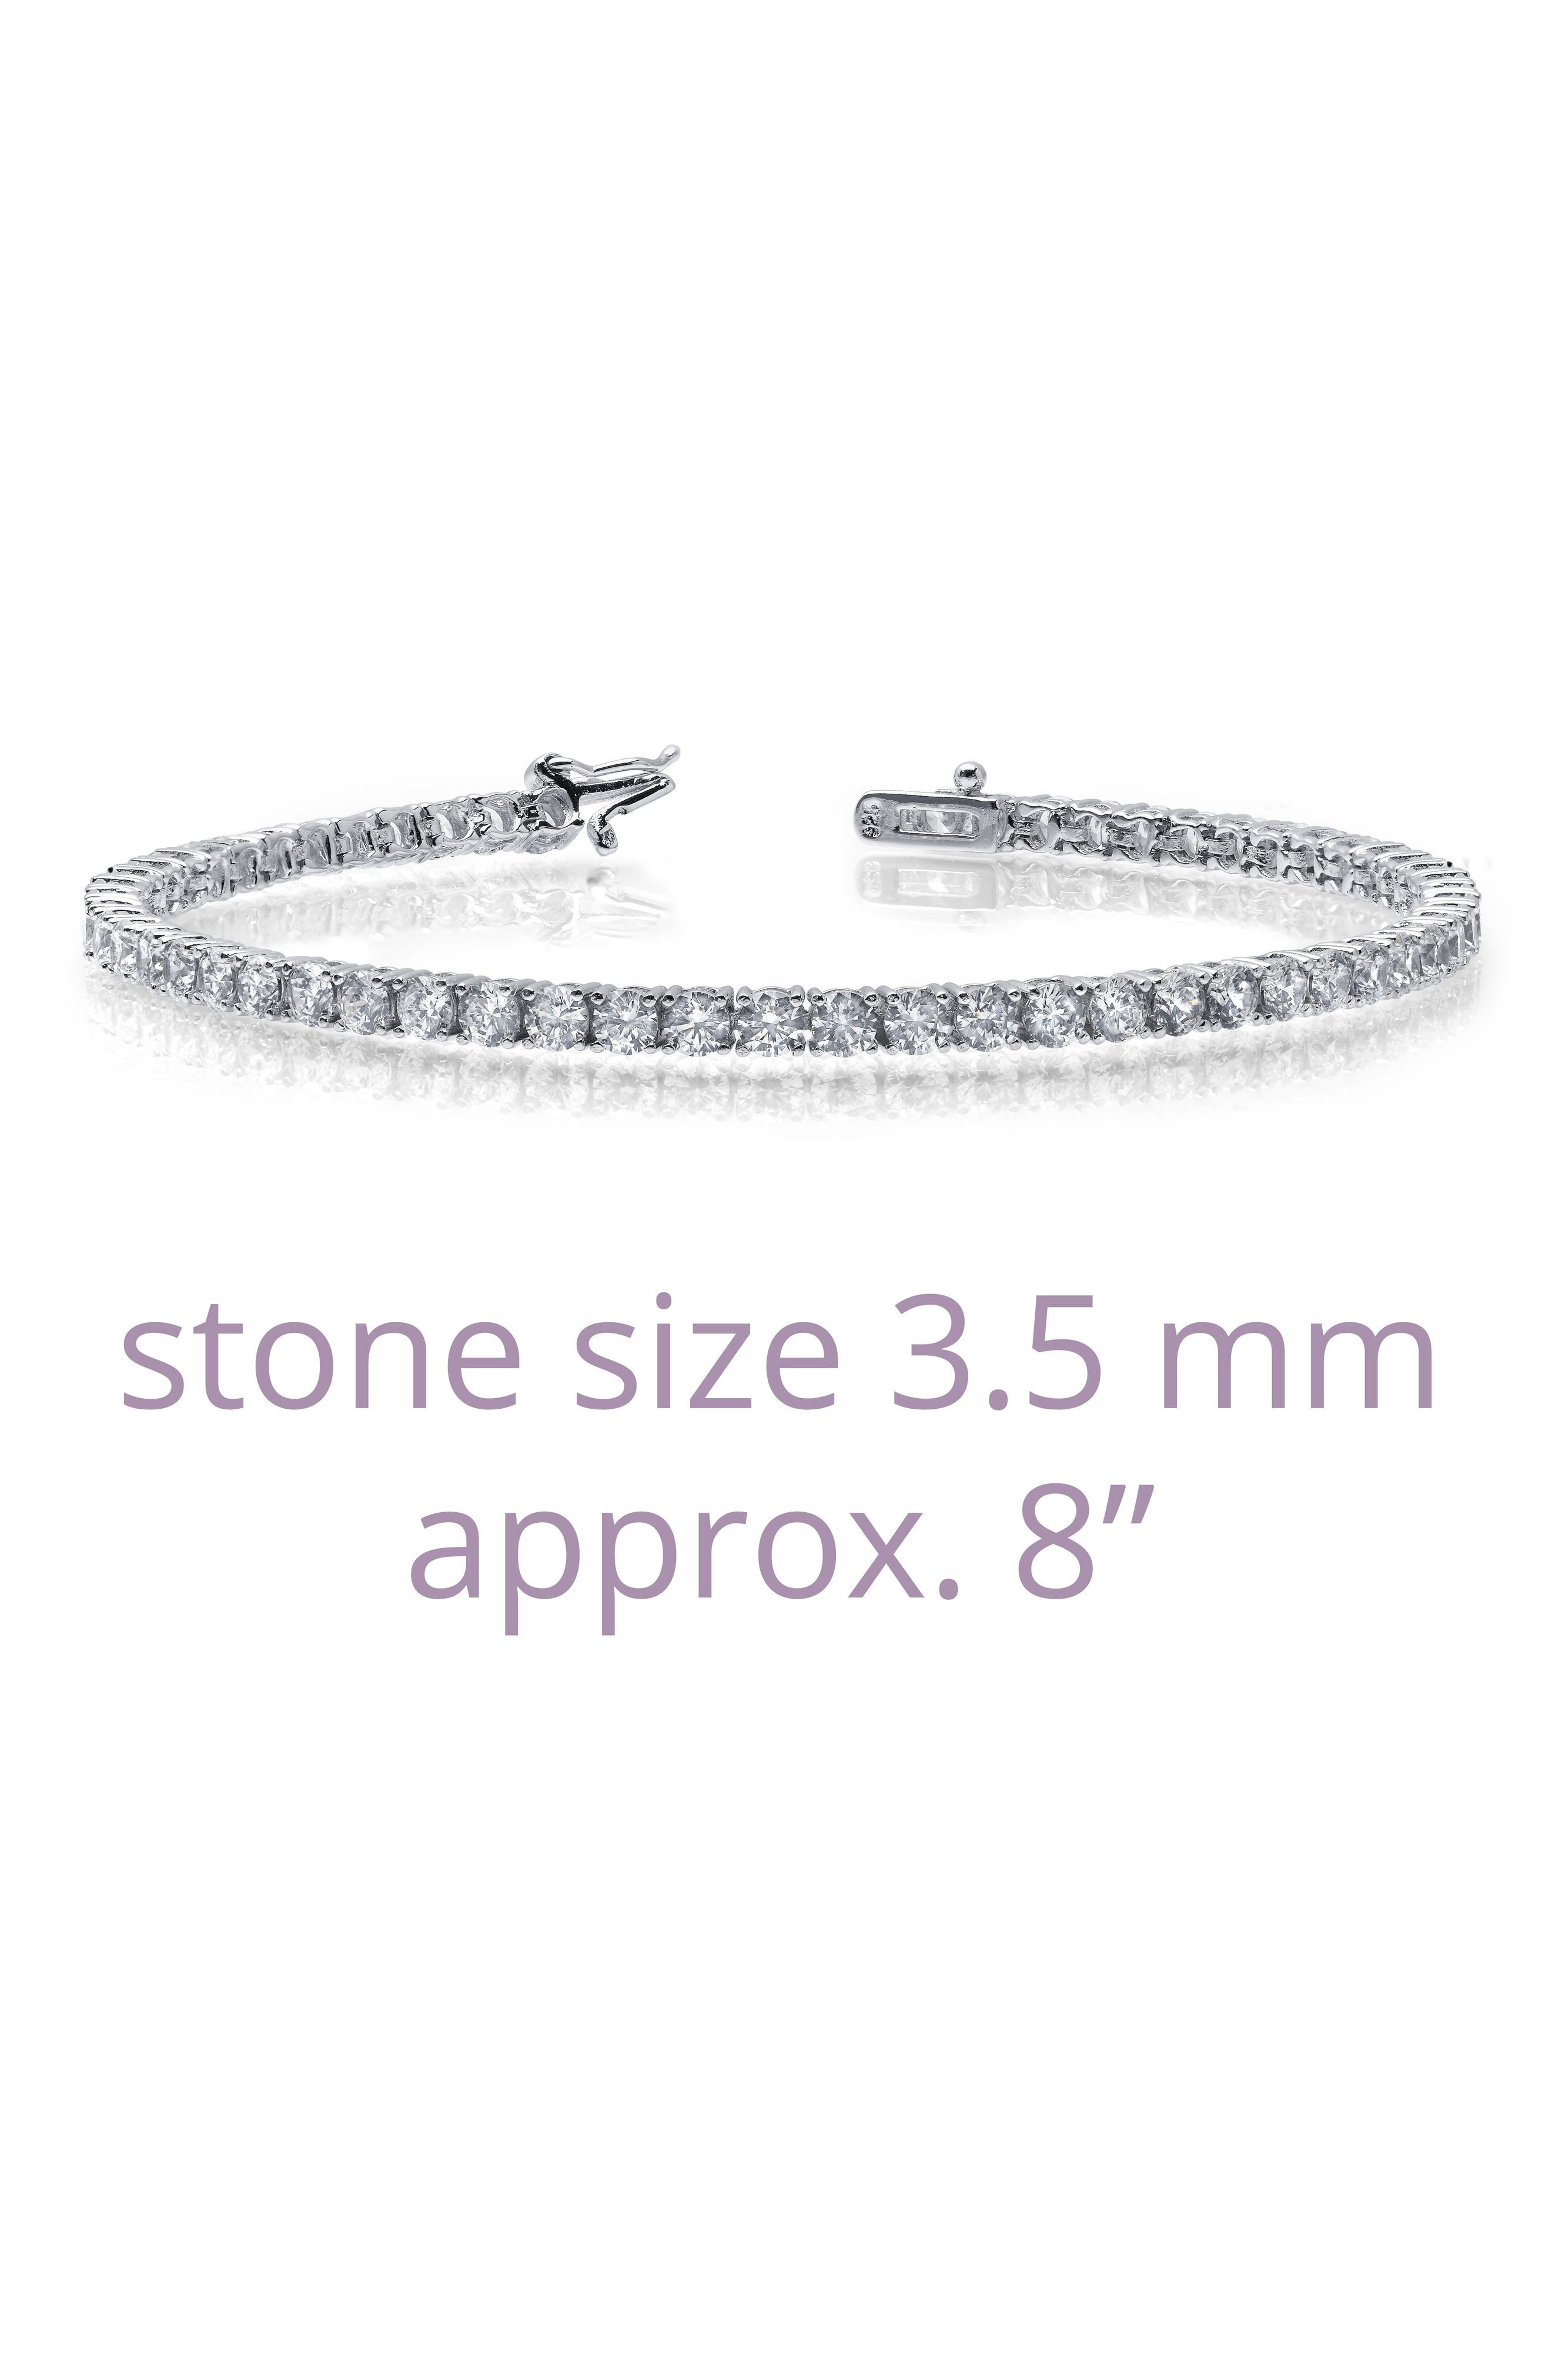 Classic Simulated Diamond Tennis Bracelet,                             Alternate thumbnail 5, color,                             SILVER